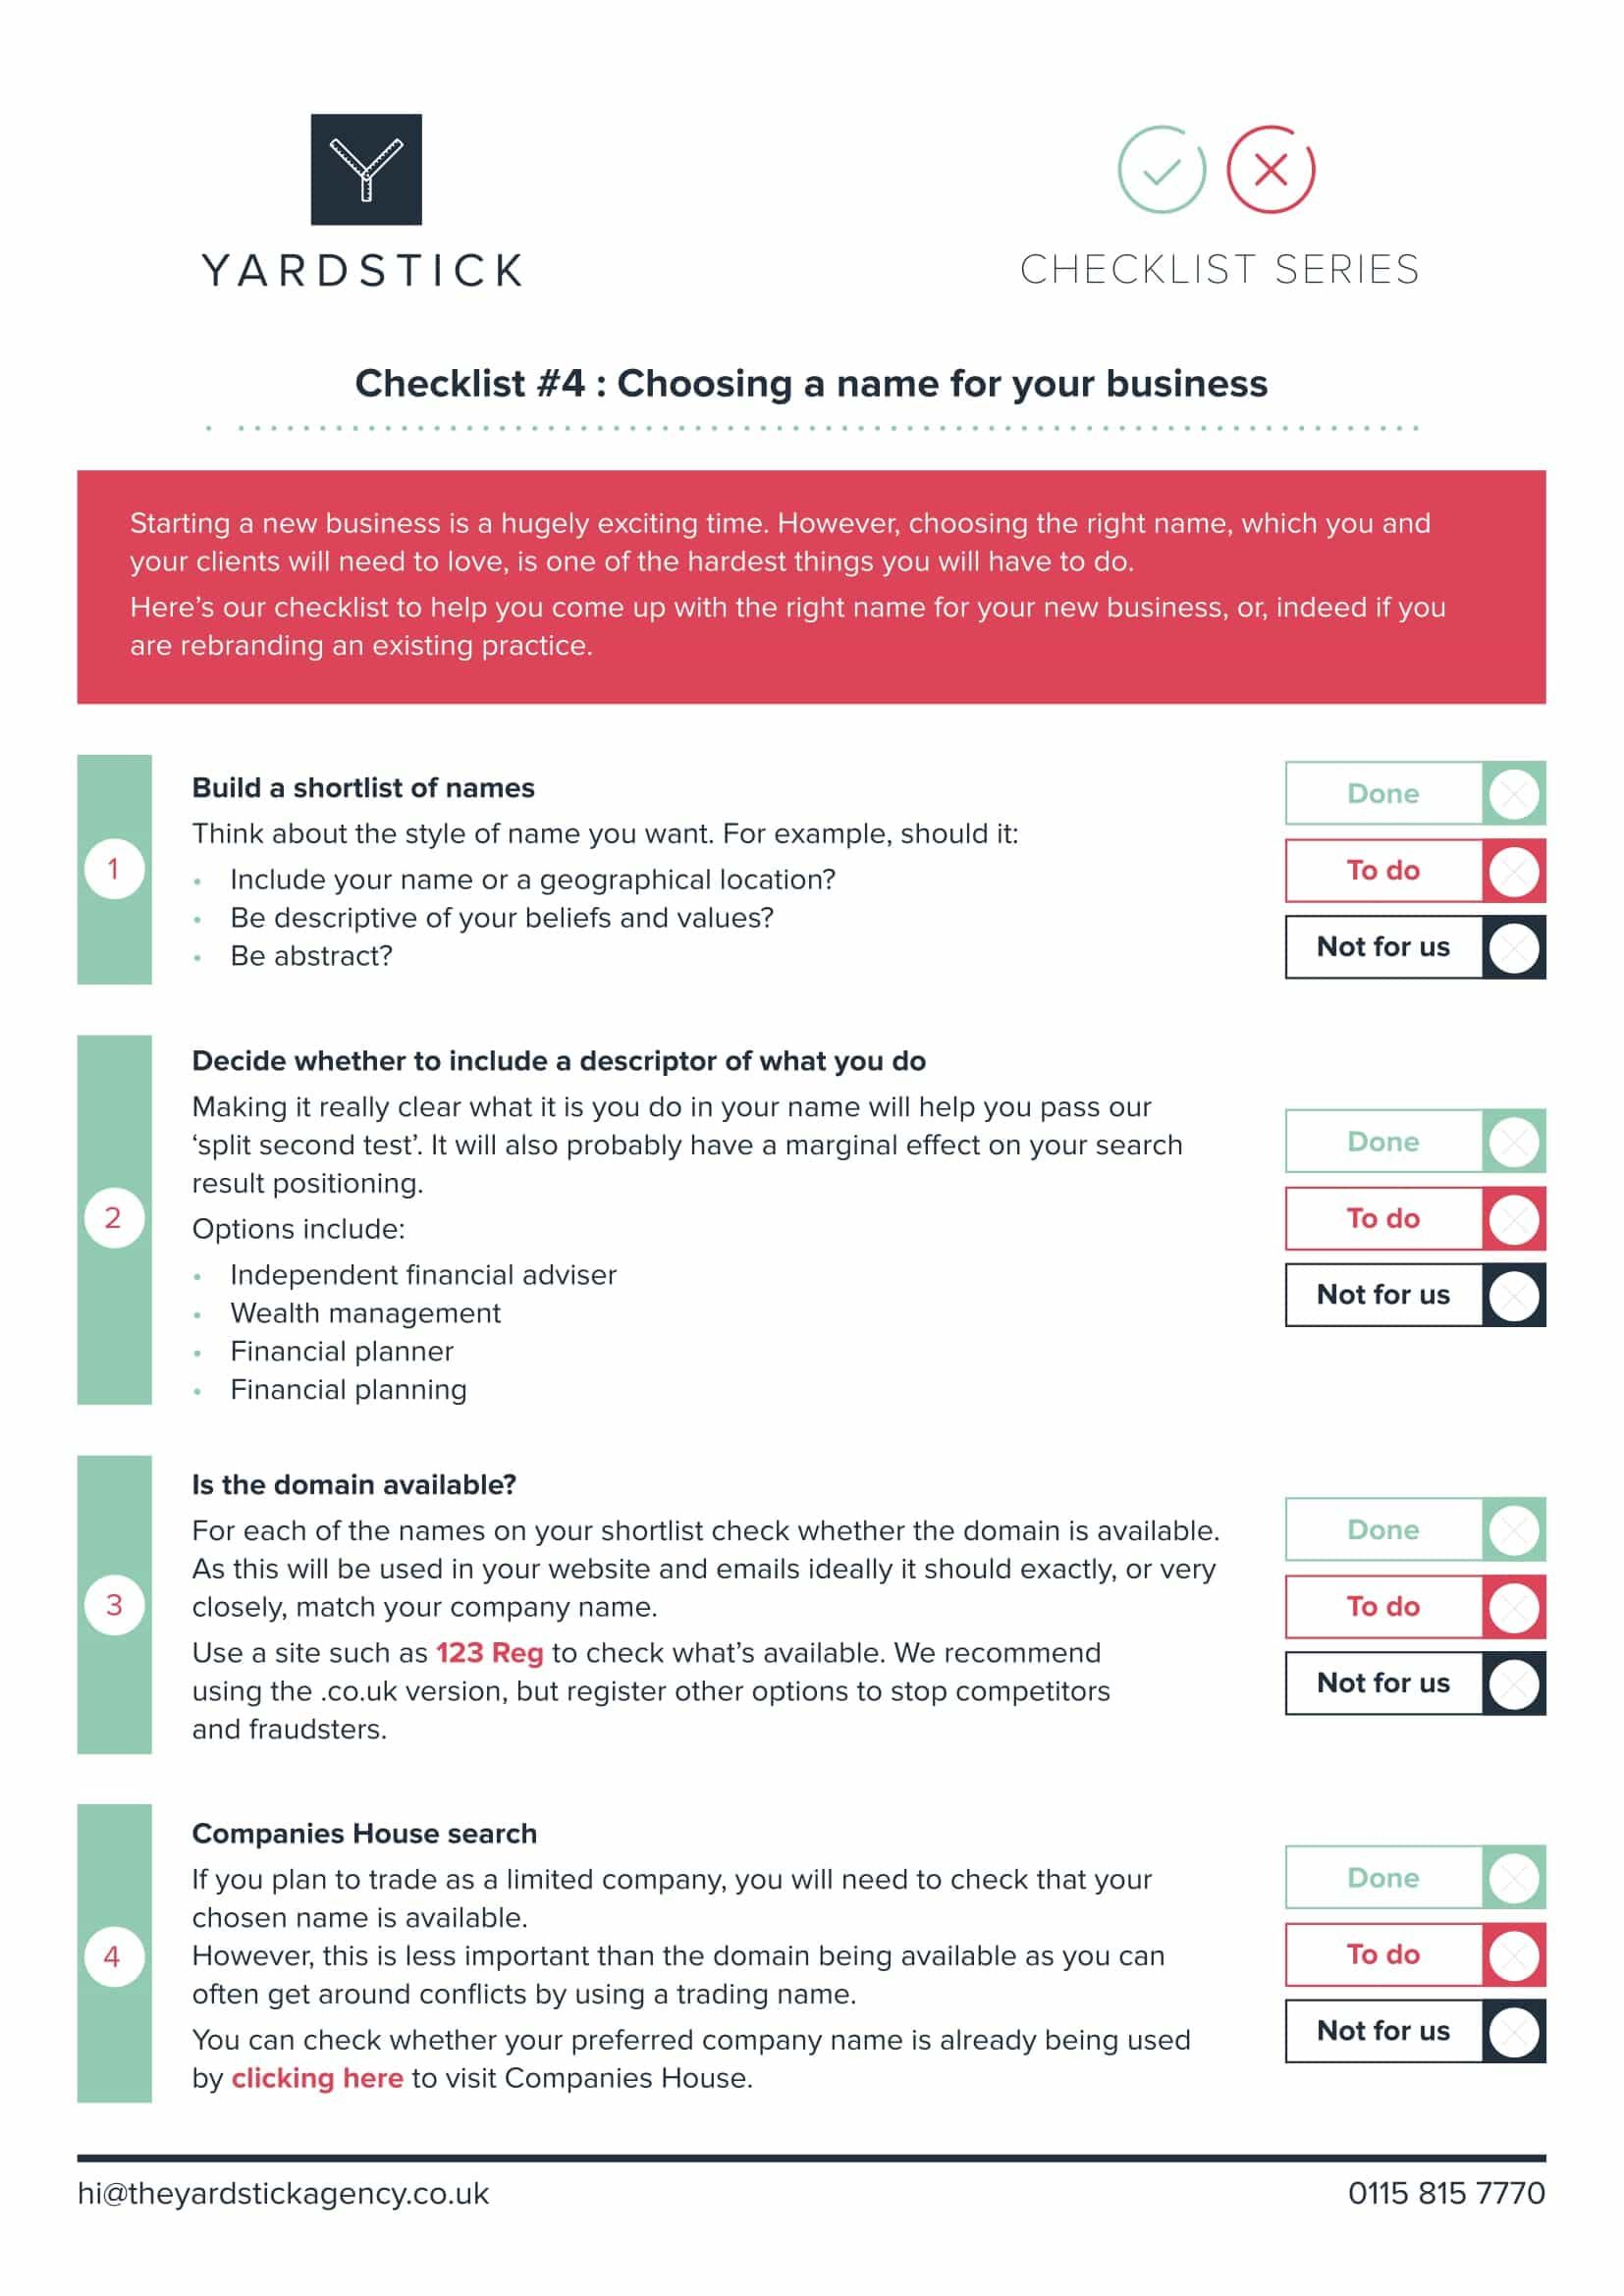 Checklist #4: Choosing a name for your business